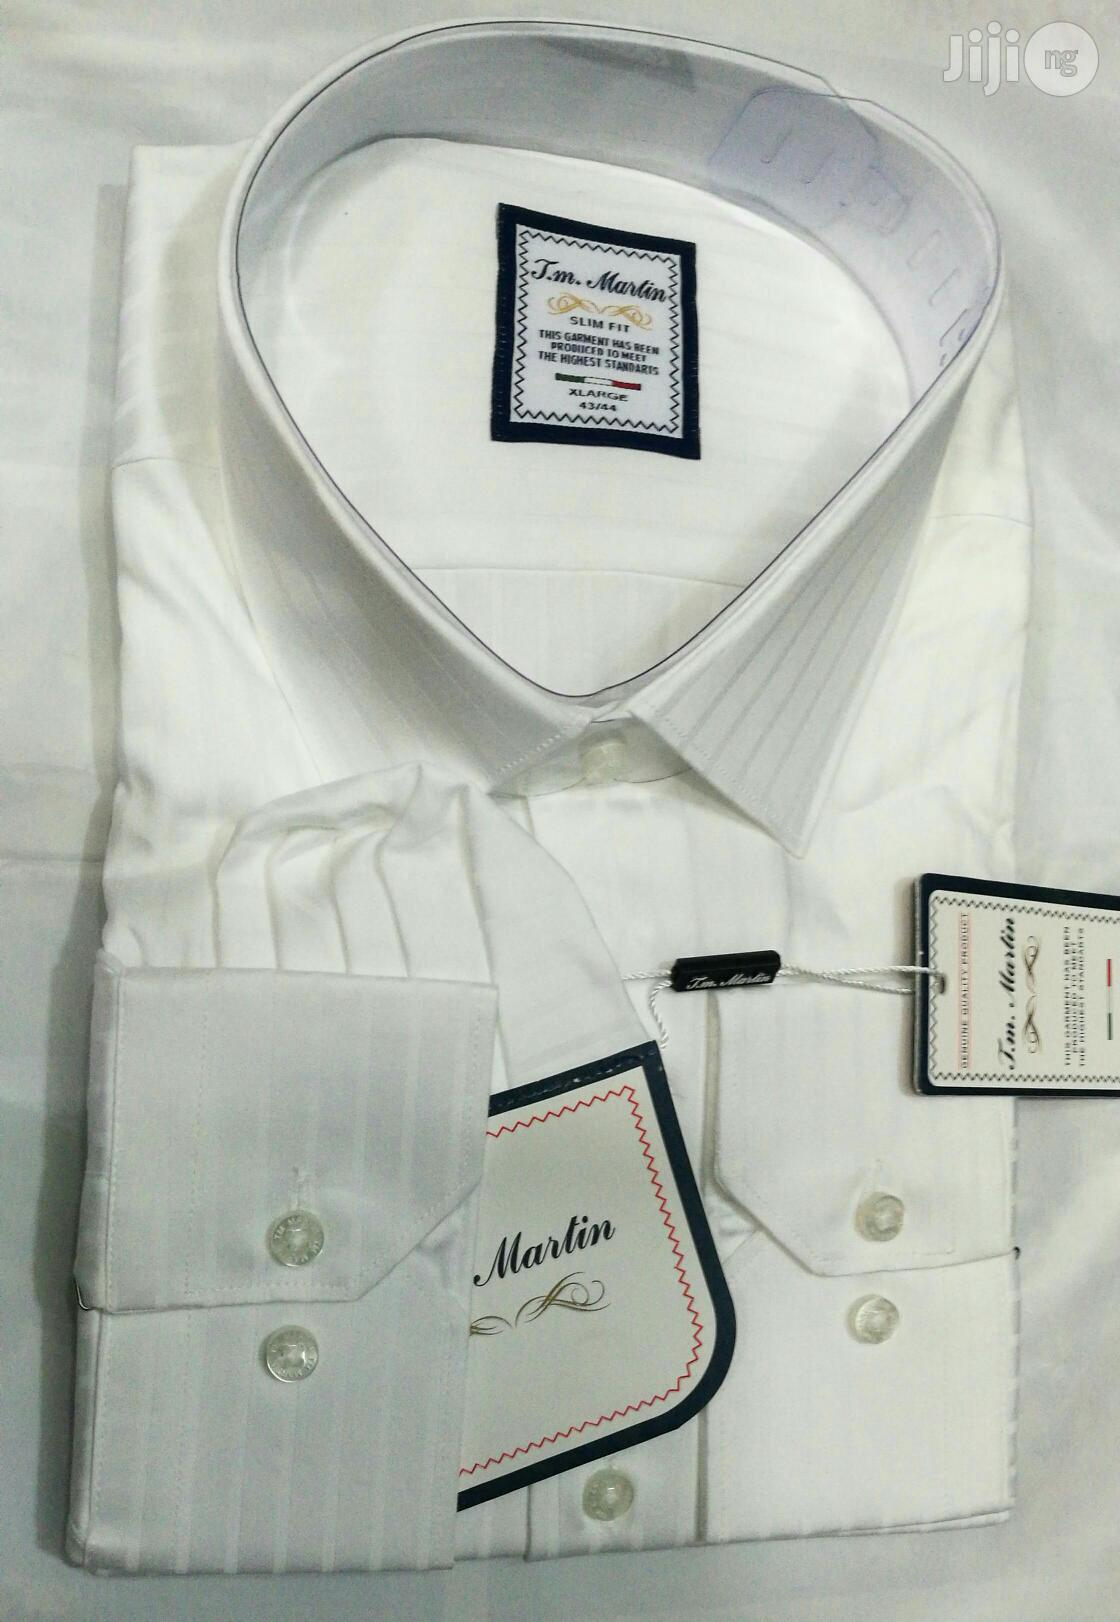 100% Pure White Shirt With Line by TM Martin | Clothing for sale in Lagos Island, Lagos State, Nigeria